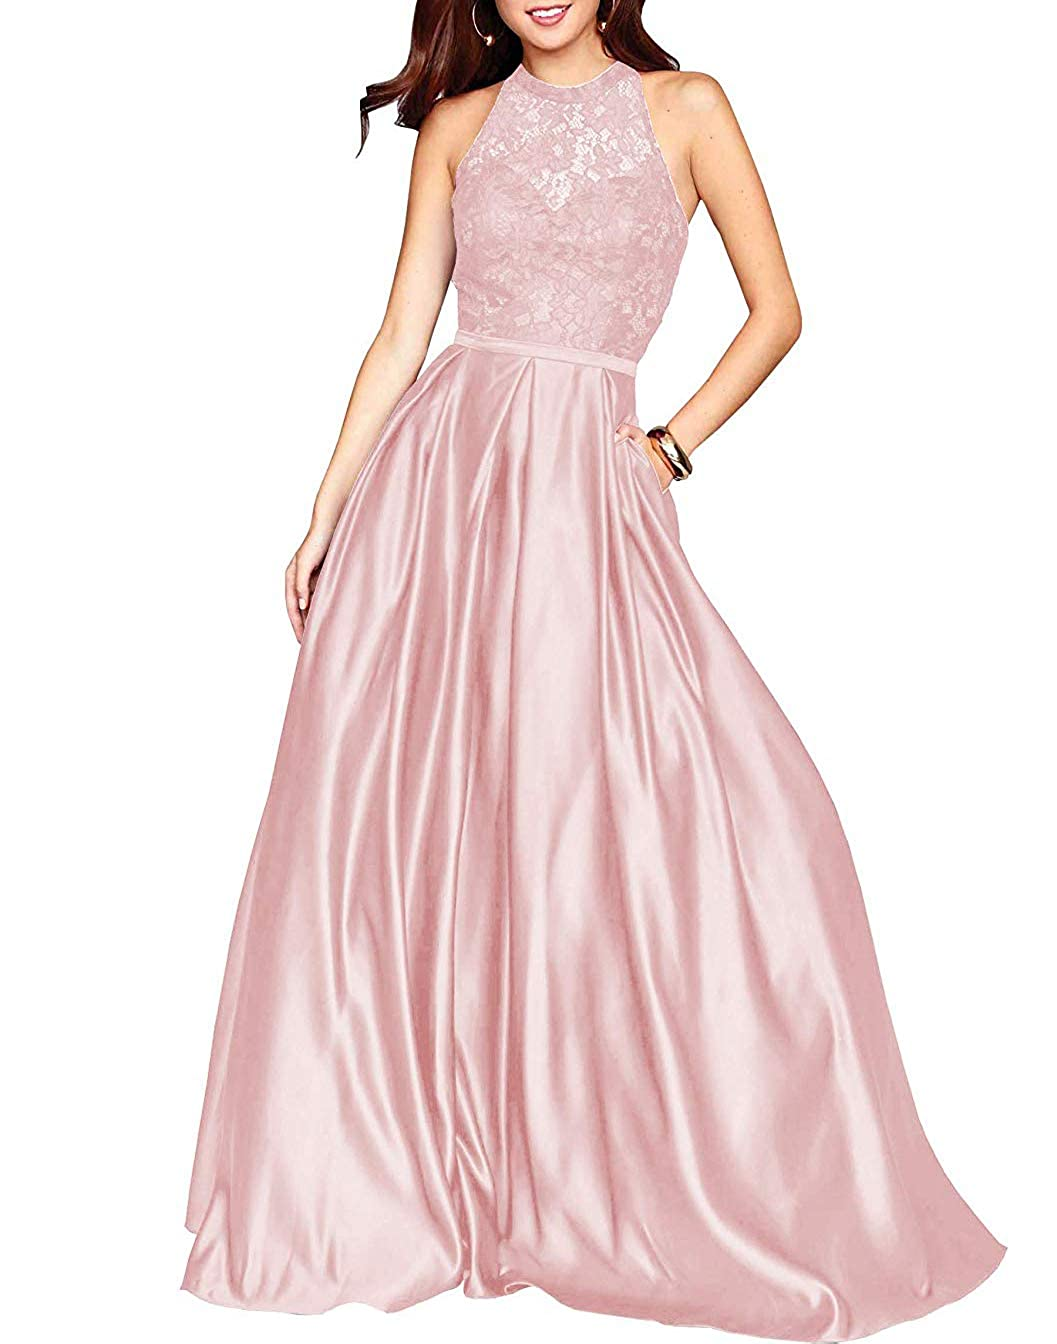 bluesh Pink PearlBridal Women's Halter Lace Prom Dresses Backless A Line Long Evening Formal Dress with Pockets